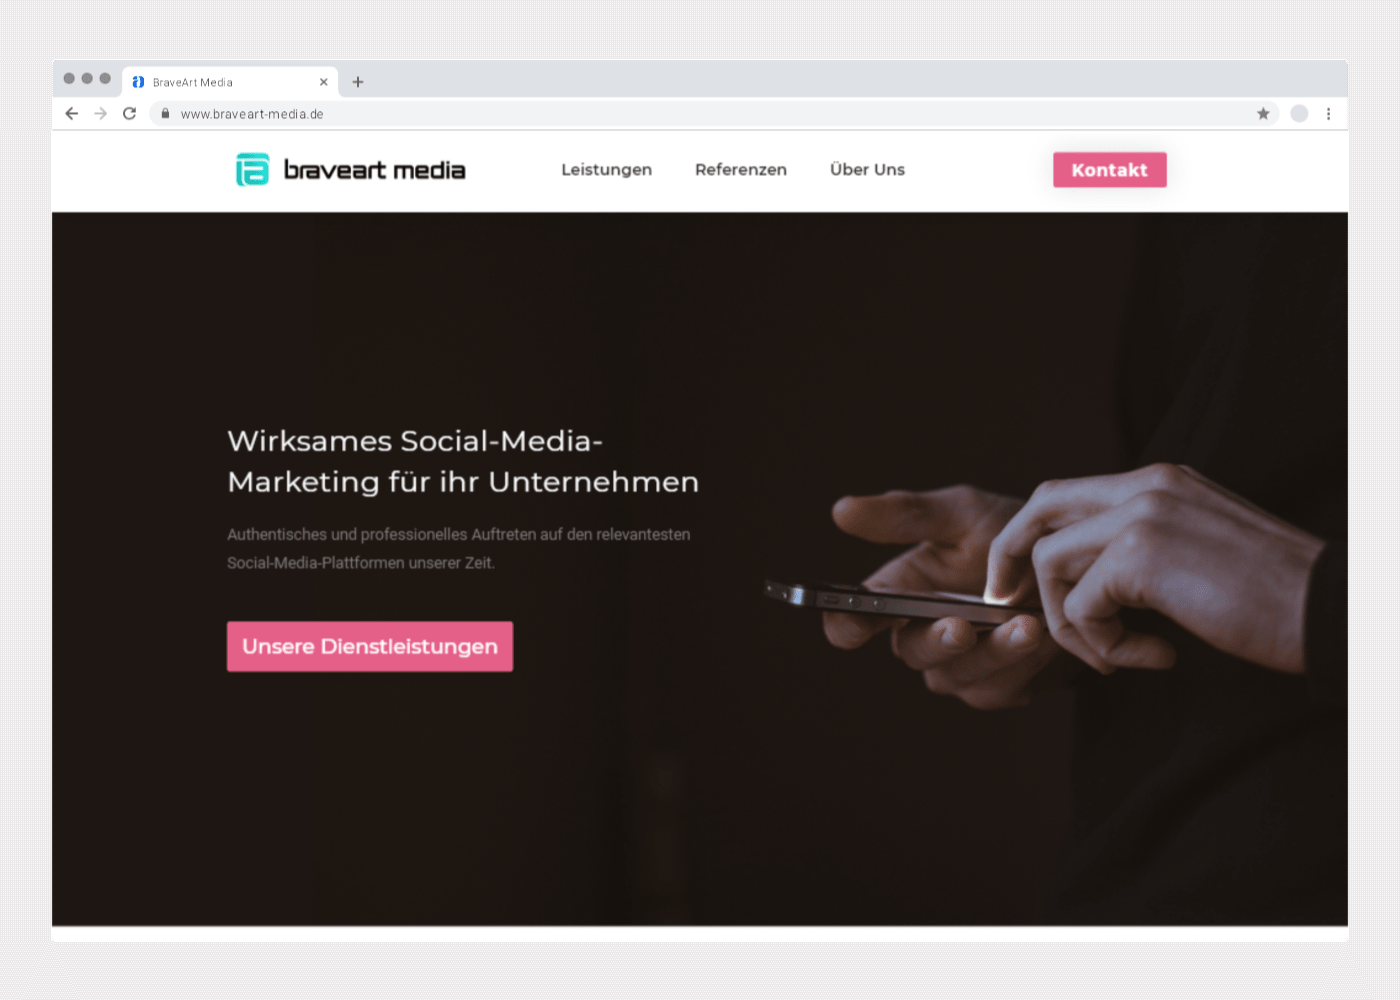 Chrome Mockup von braveart-media.de